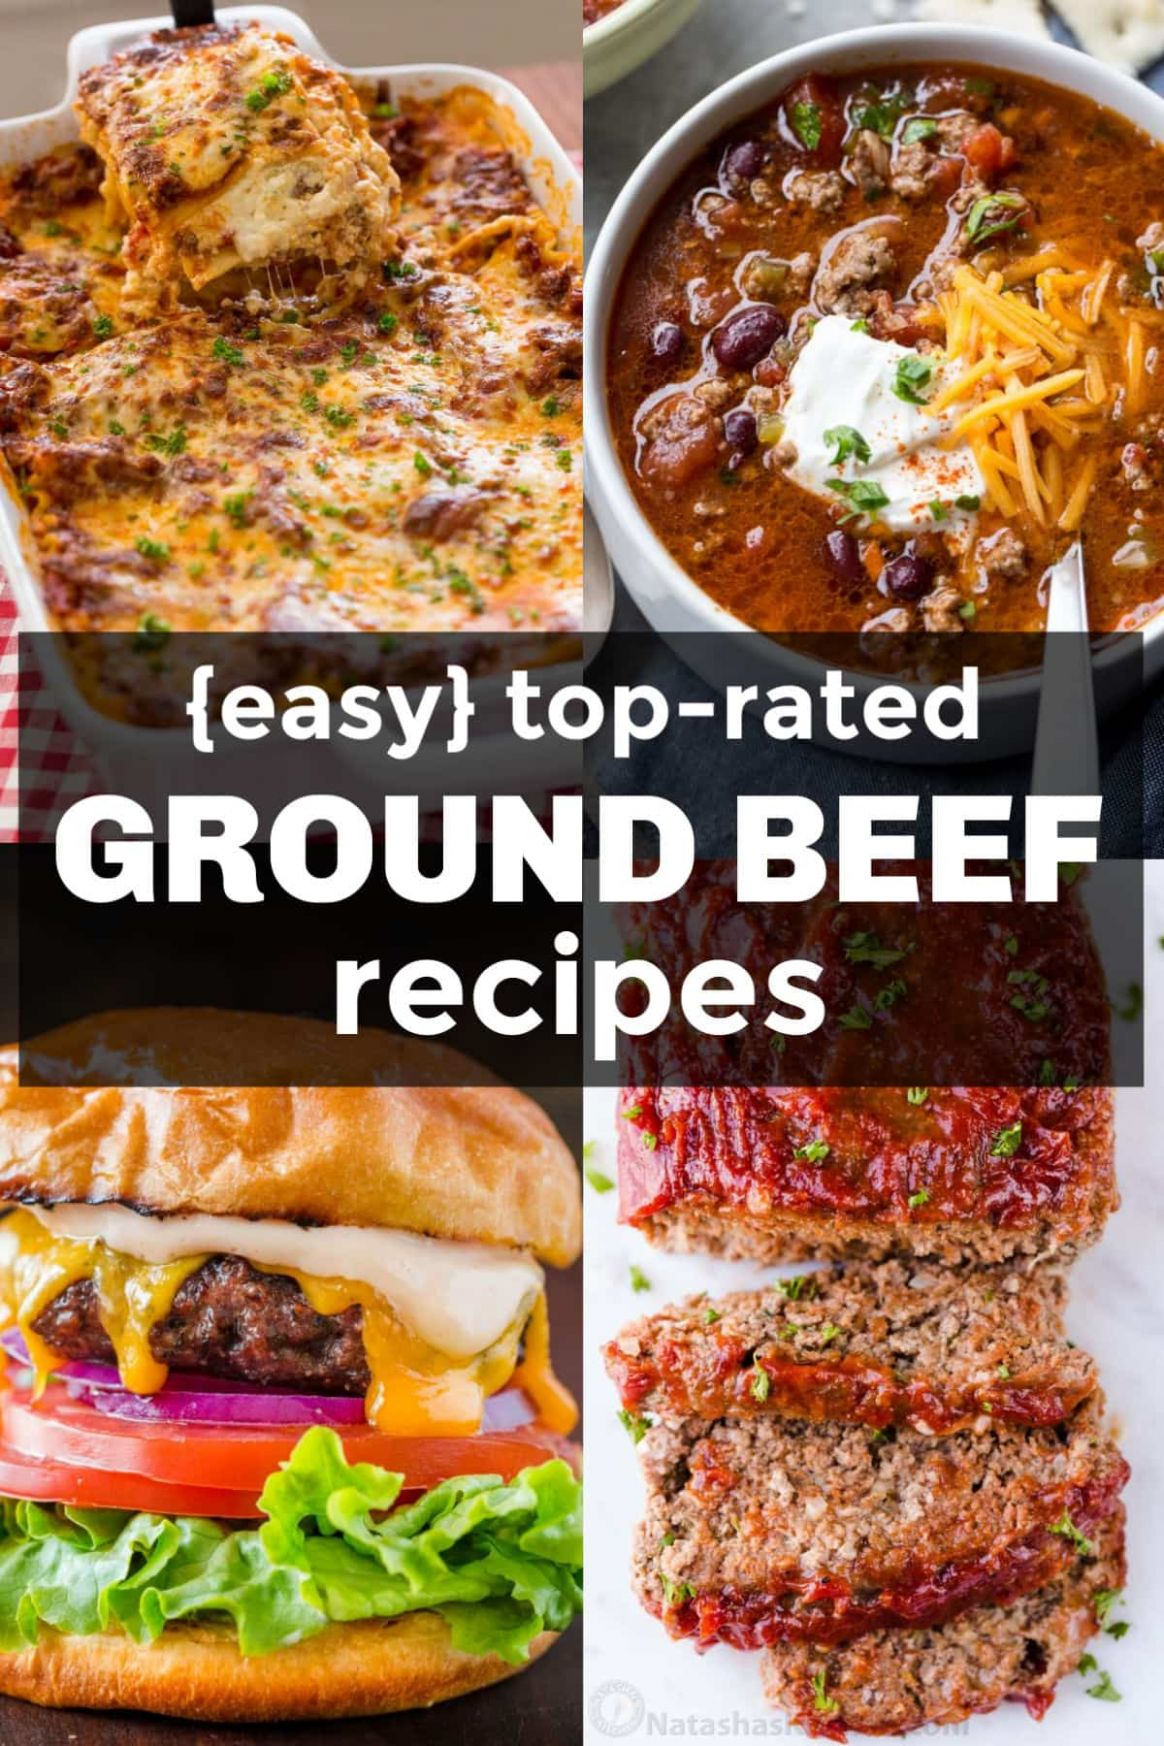 How to Cook Ground Beef for Ground Beef Recipes - Easy Recipes Hamburger Meat